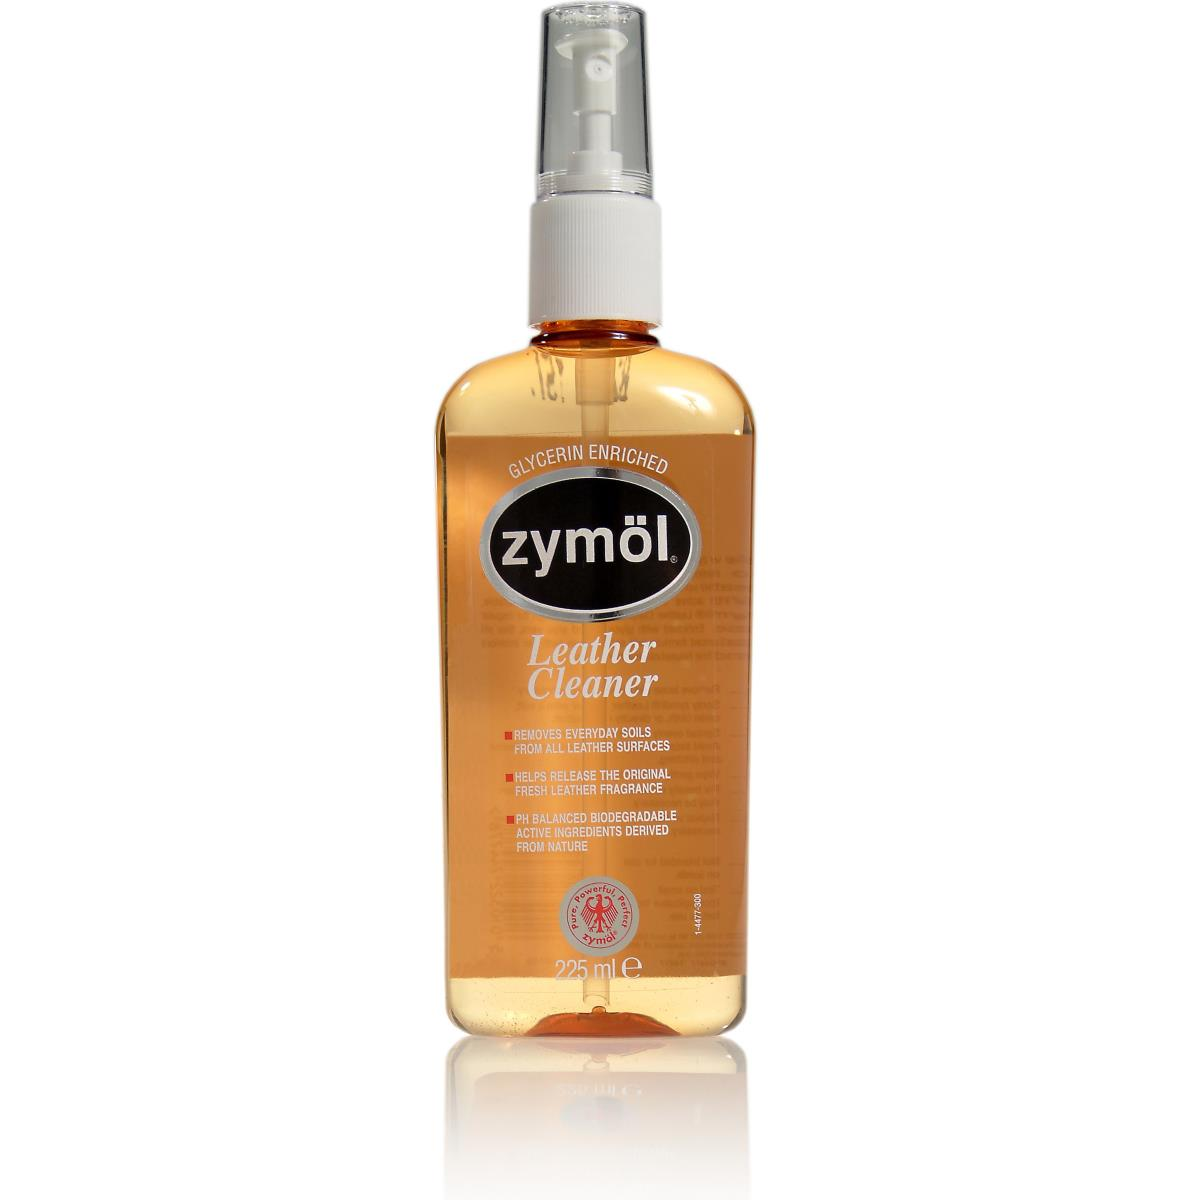 Zymol Leather Cleaner (236ml)